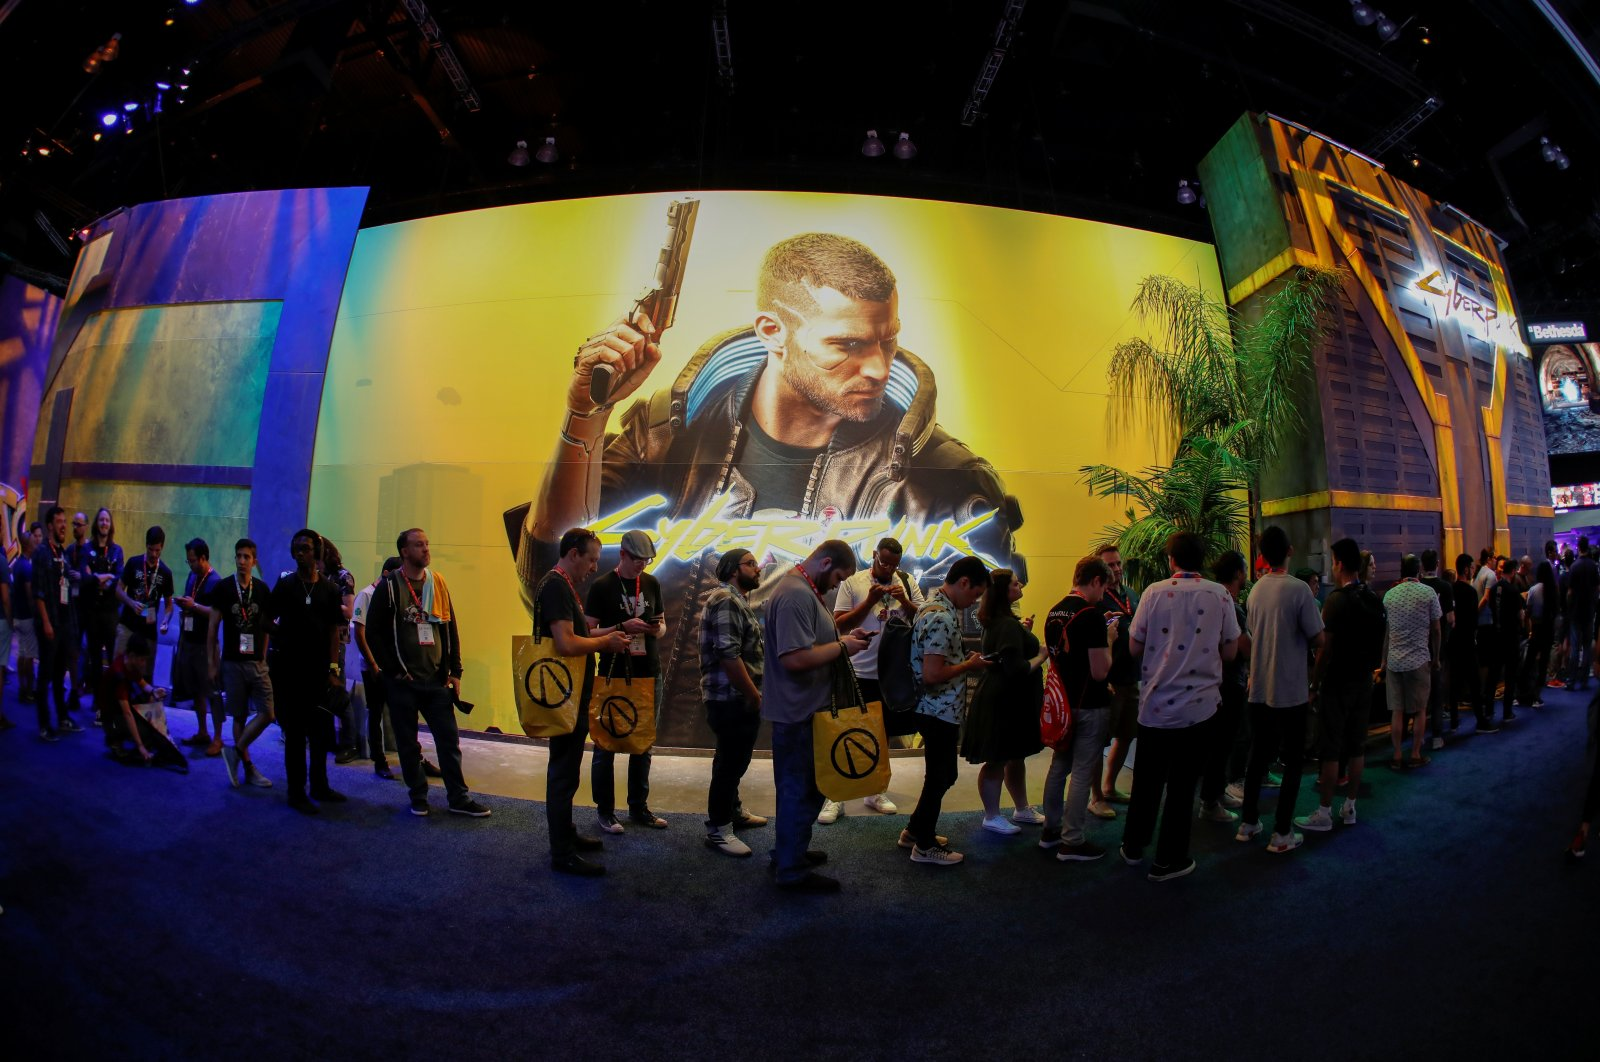 Attendees wait in line at the Cyberpunk 2077 booth during the opening day of E3, the annual video games expo revealing the latest in gaming software and hardware in Los Angeles, California, U.S., June 11, 2019. (REUTERS Photo)